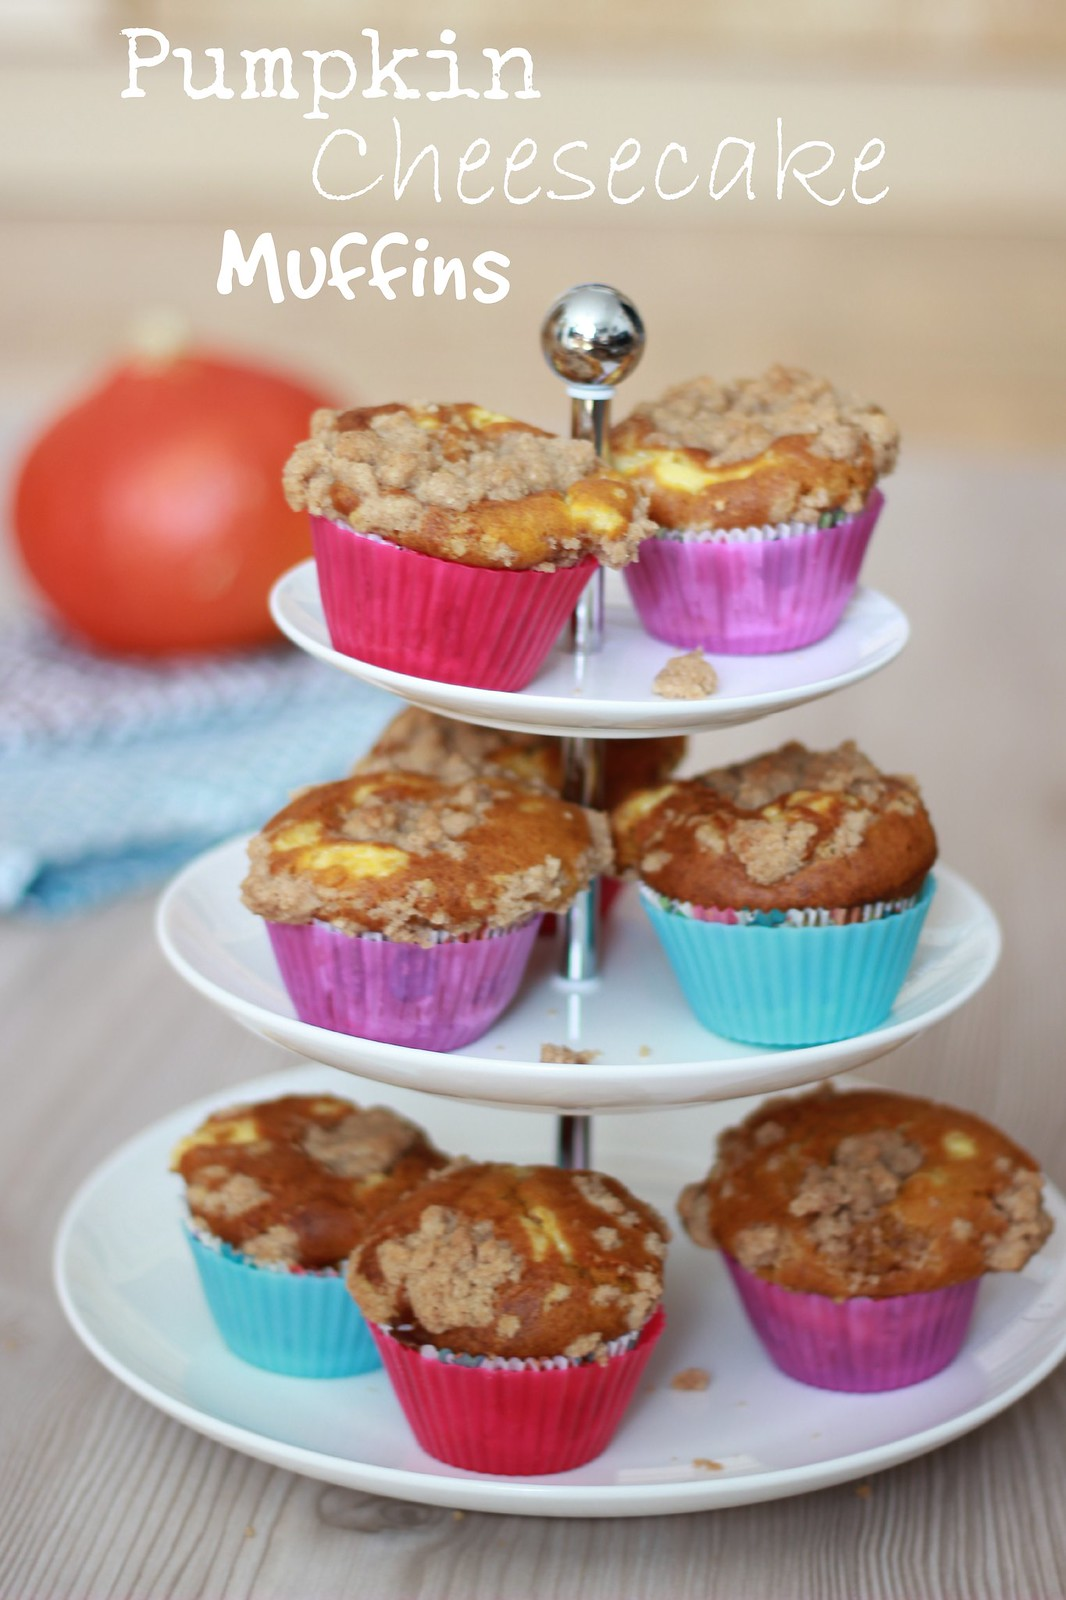 Pumpkin Cheesecake Muffins 02